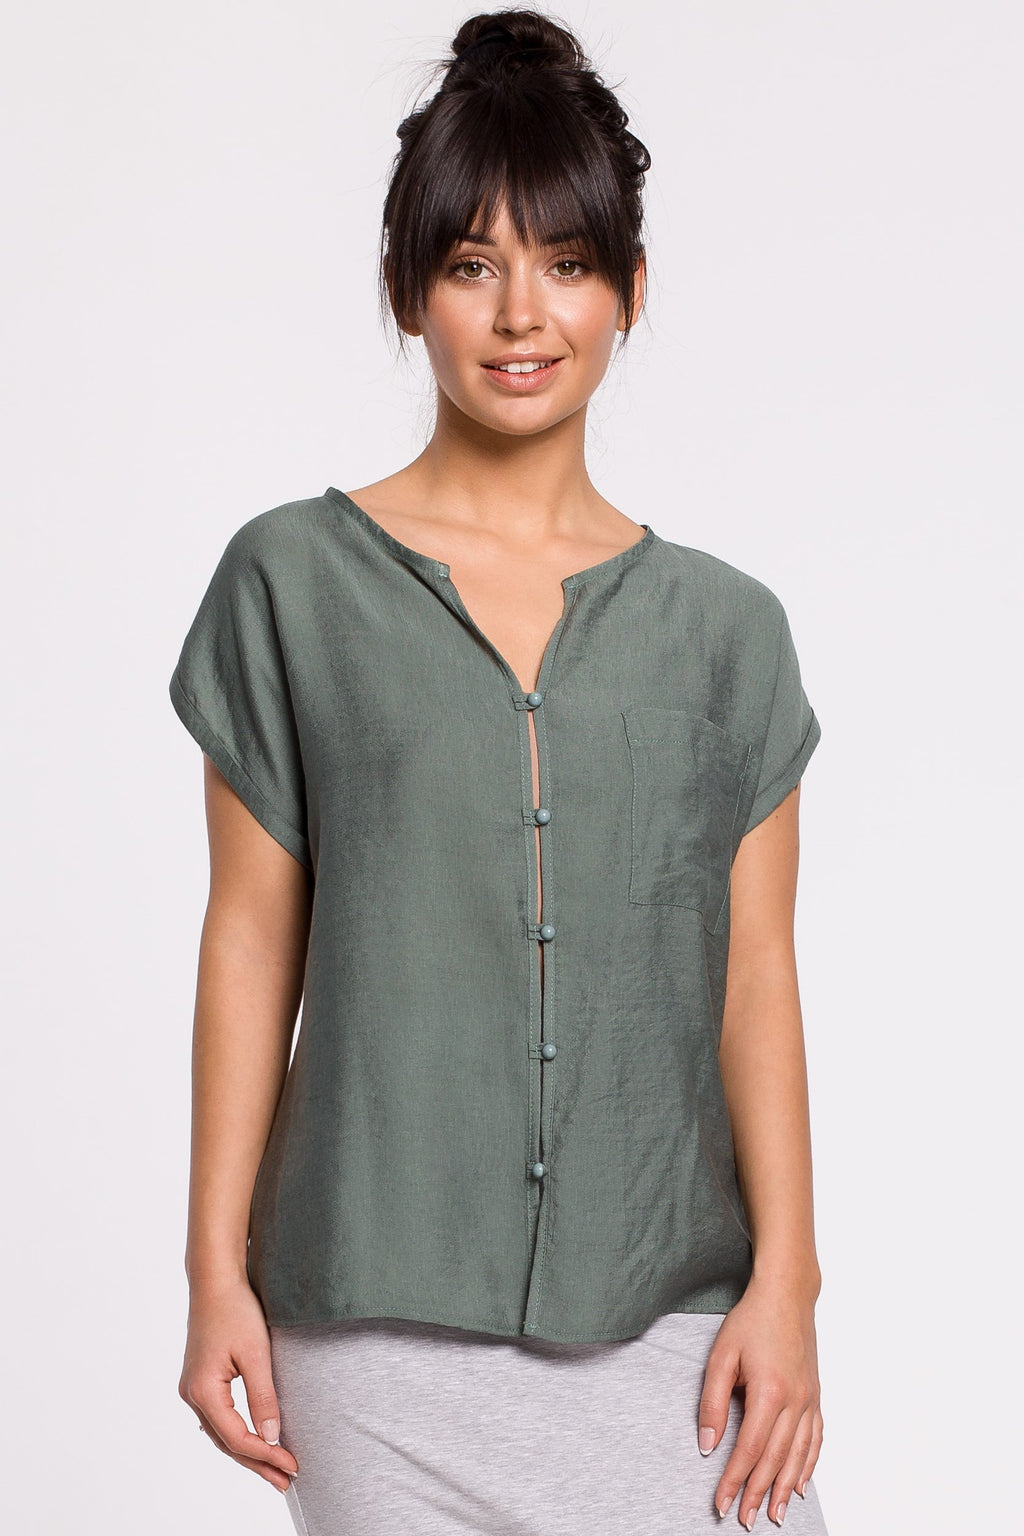 Short Sleeve Button Up Green Blouse - So Chic Boutique